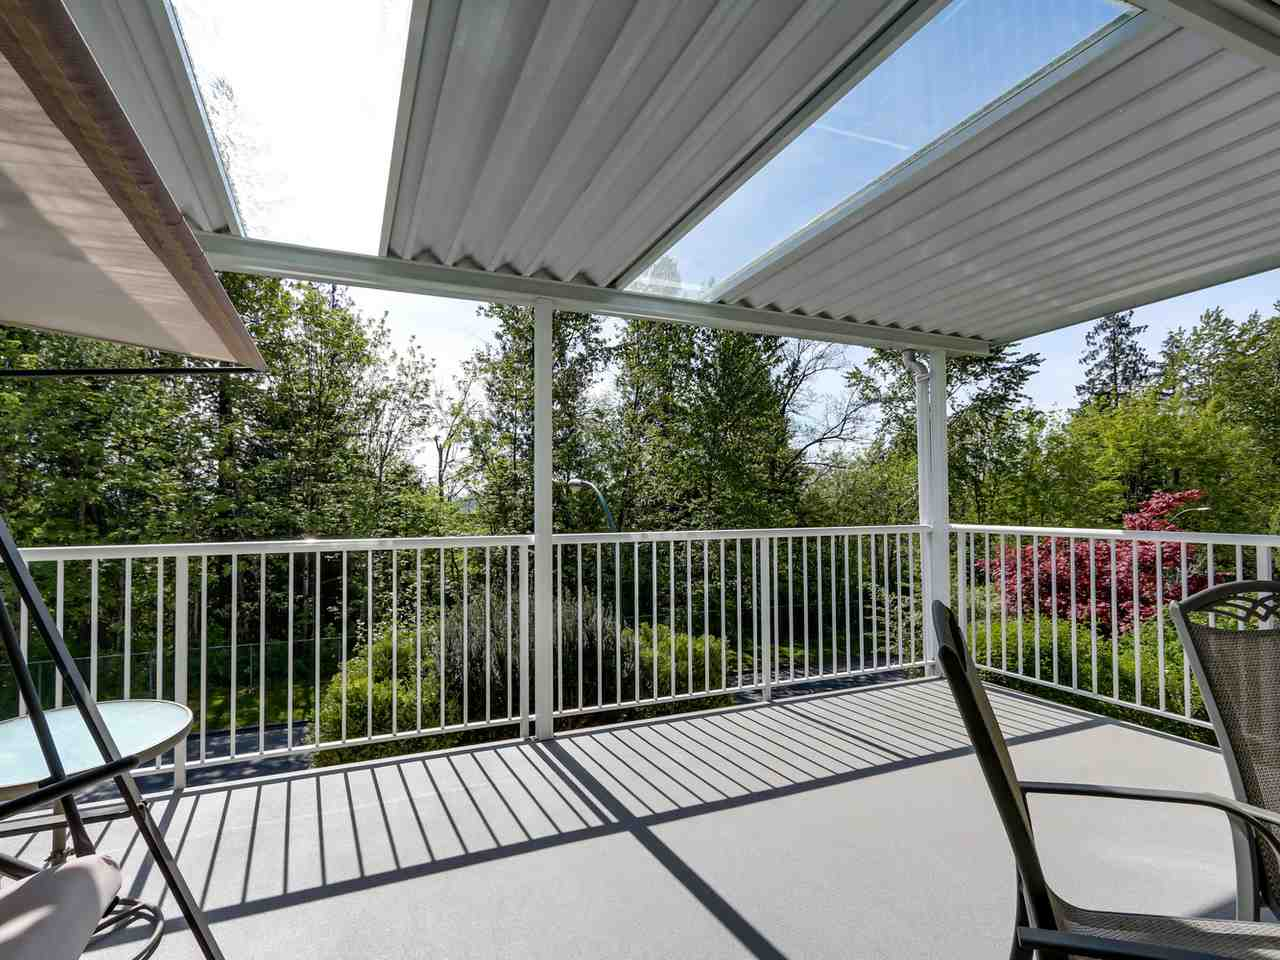 Photo 10: 2744 CANIM Avenue in Coquitlam: Coquitlam East House for sale : MLS(r) # R2059408